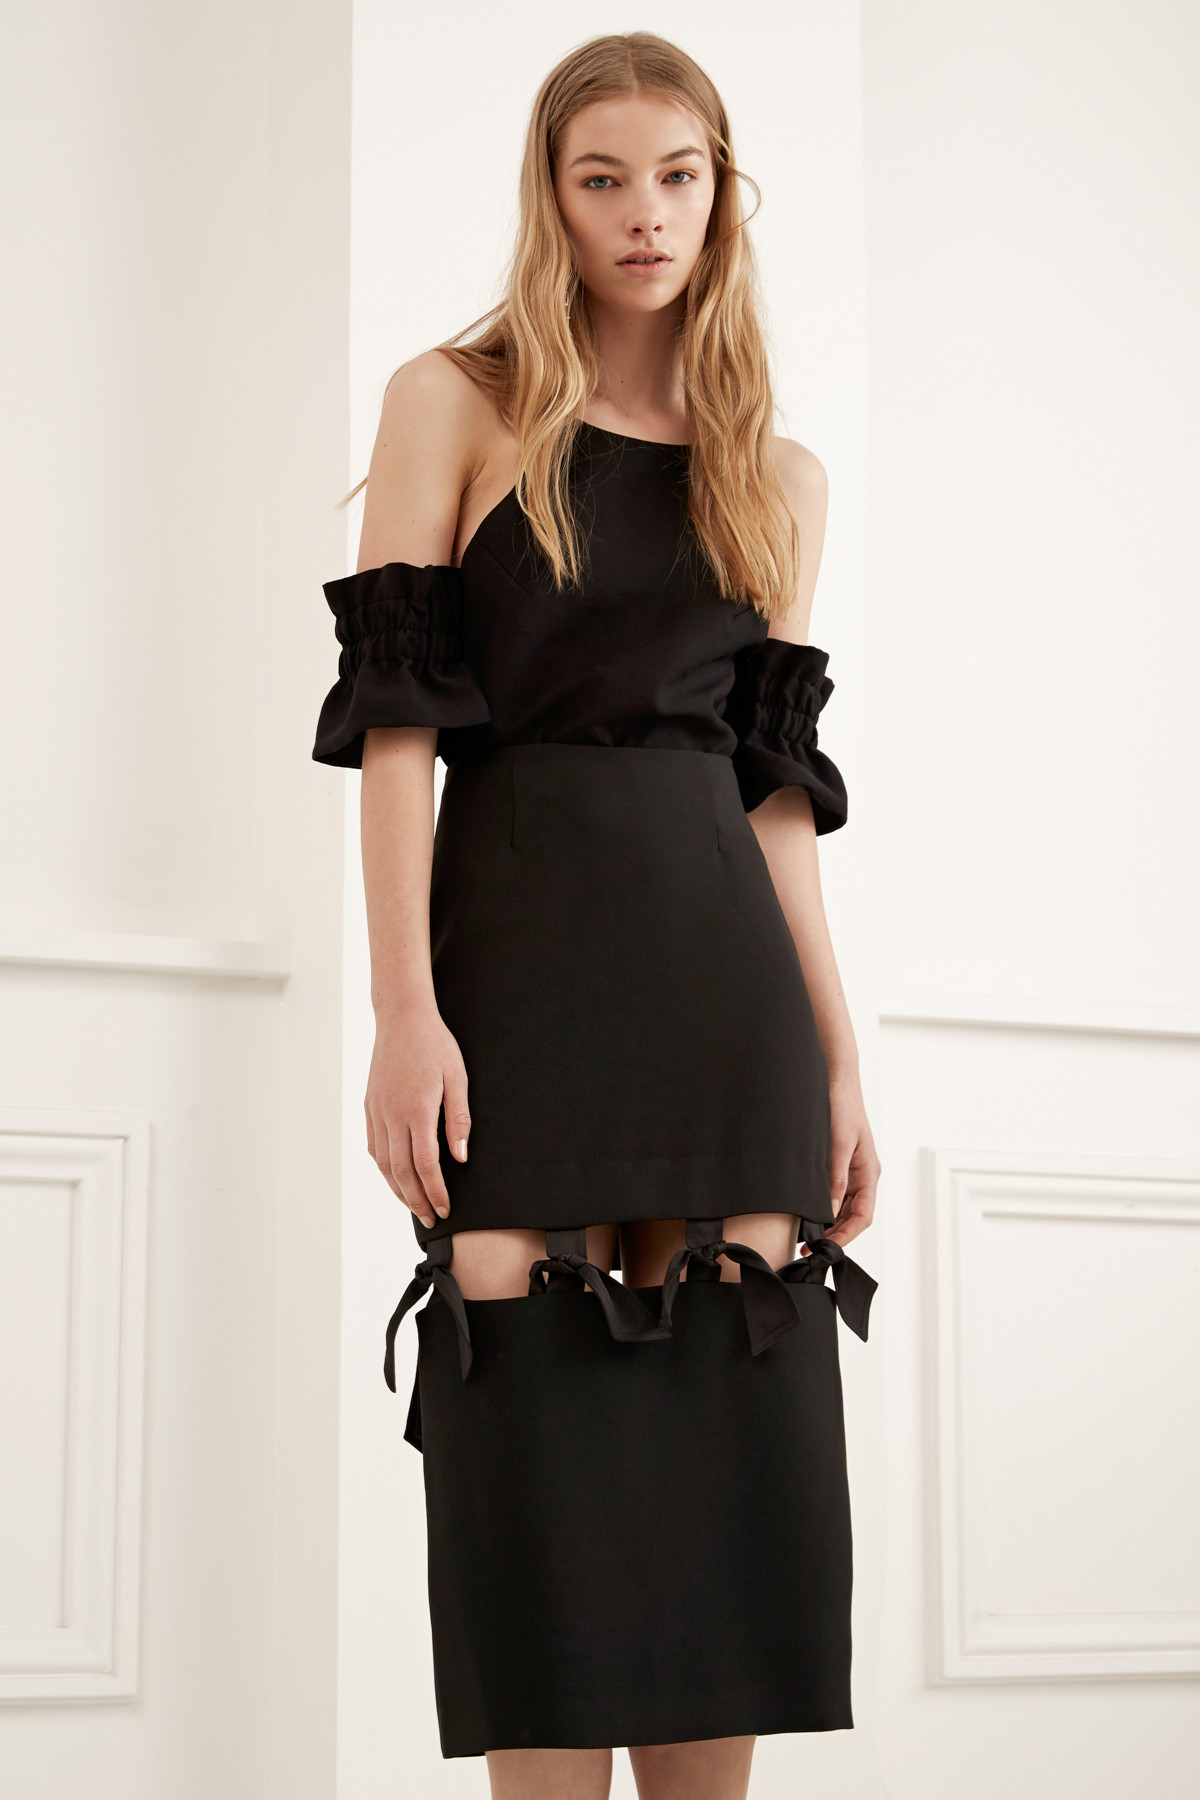 Shop  C/MEO Double Take Top  +  Eternity Skirt .